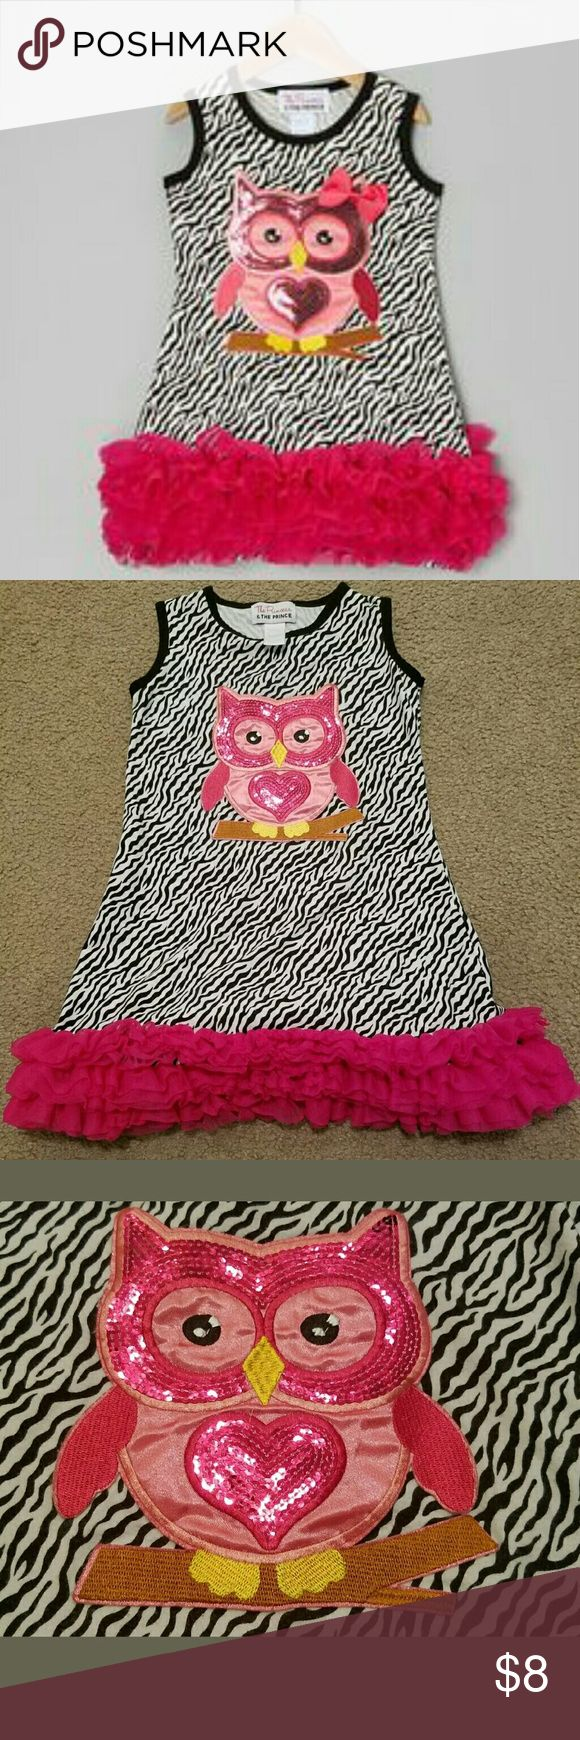 The Princess & The Prince Owl Sequin Dress 8/9 This The Princess & The Prince Owl Sequin Dress Size 8/9 is in good pre-owned condition. It is zebra striped black and white with pink ruffles. It fits at the knee or above. So cute!  Measurements are: Armpit to Armpit: 13.5 inches  Length: 24 inches The Princess & The Prince  Dresses Casual